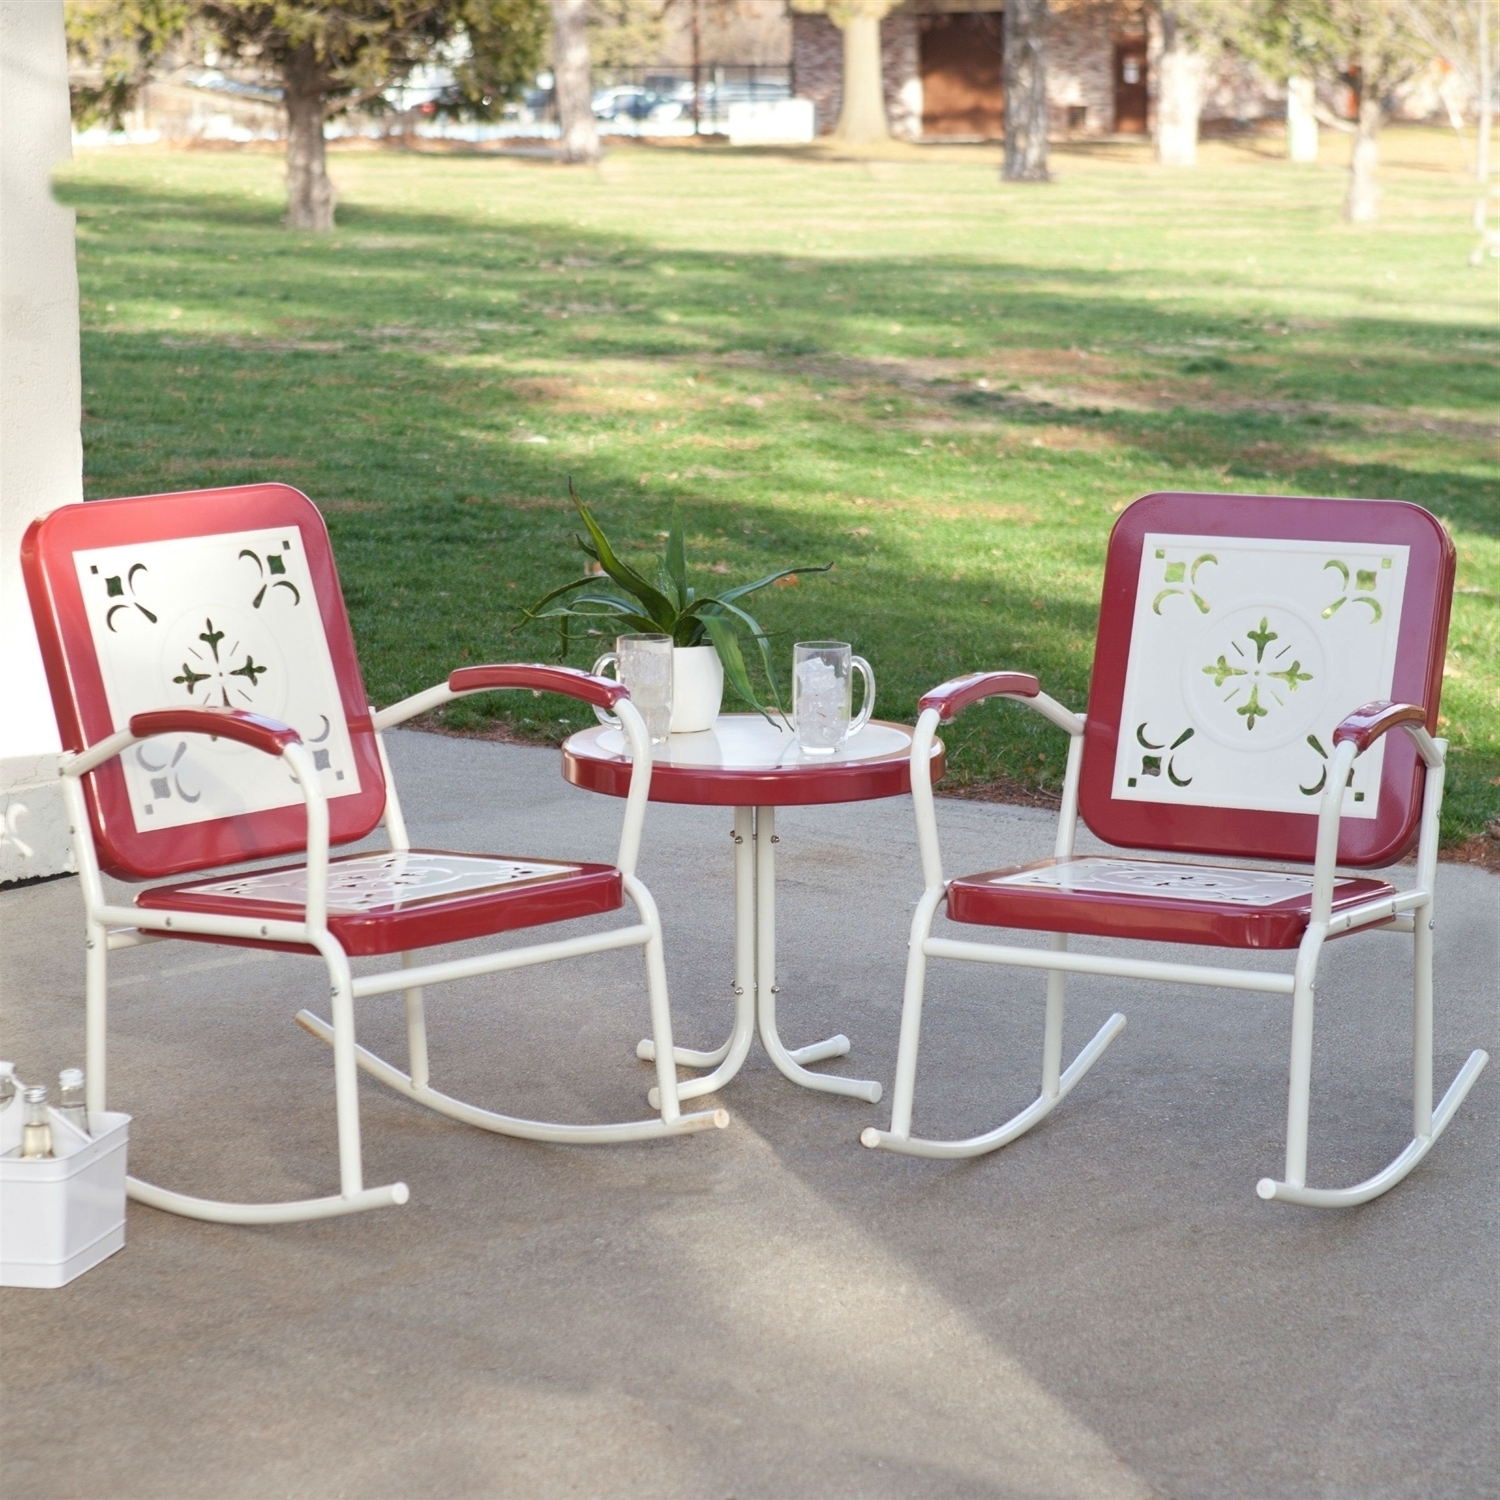 Cherry Red Retro Patio 3 Pc Metal Rocker Rocking Chair Set Within 3 For 2019 Retro Outdoor Rocking Chairs (View 7 of 20)